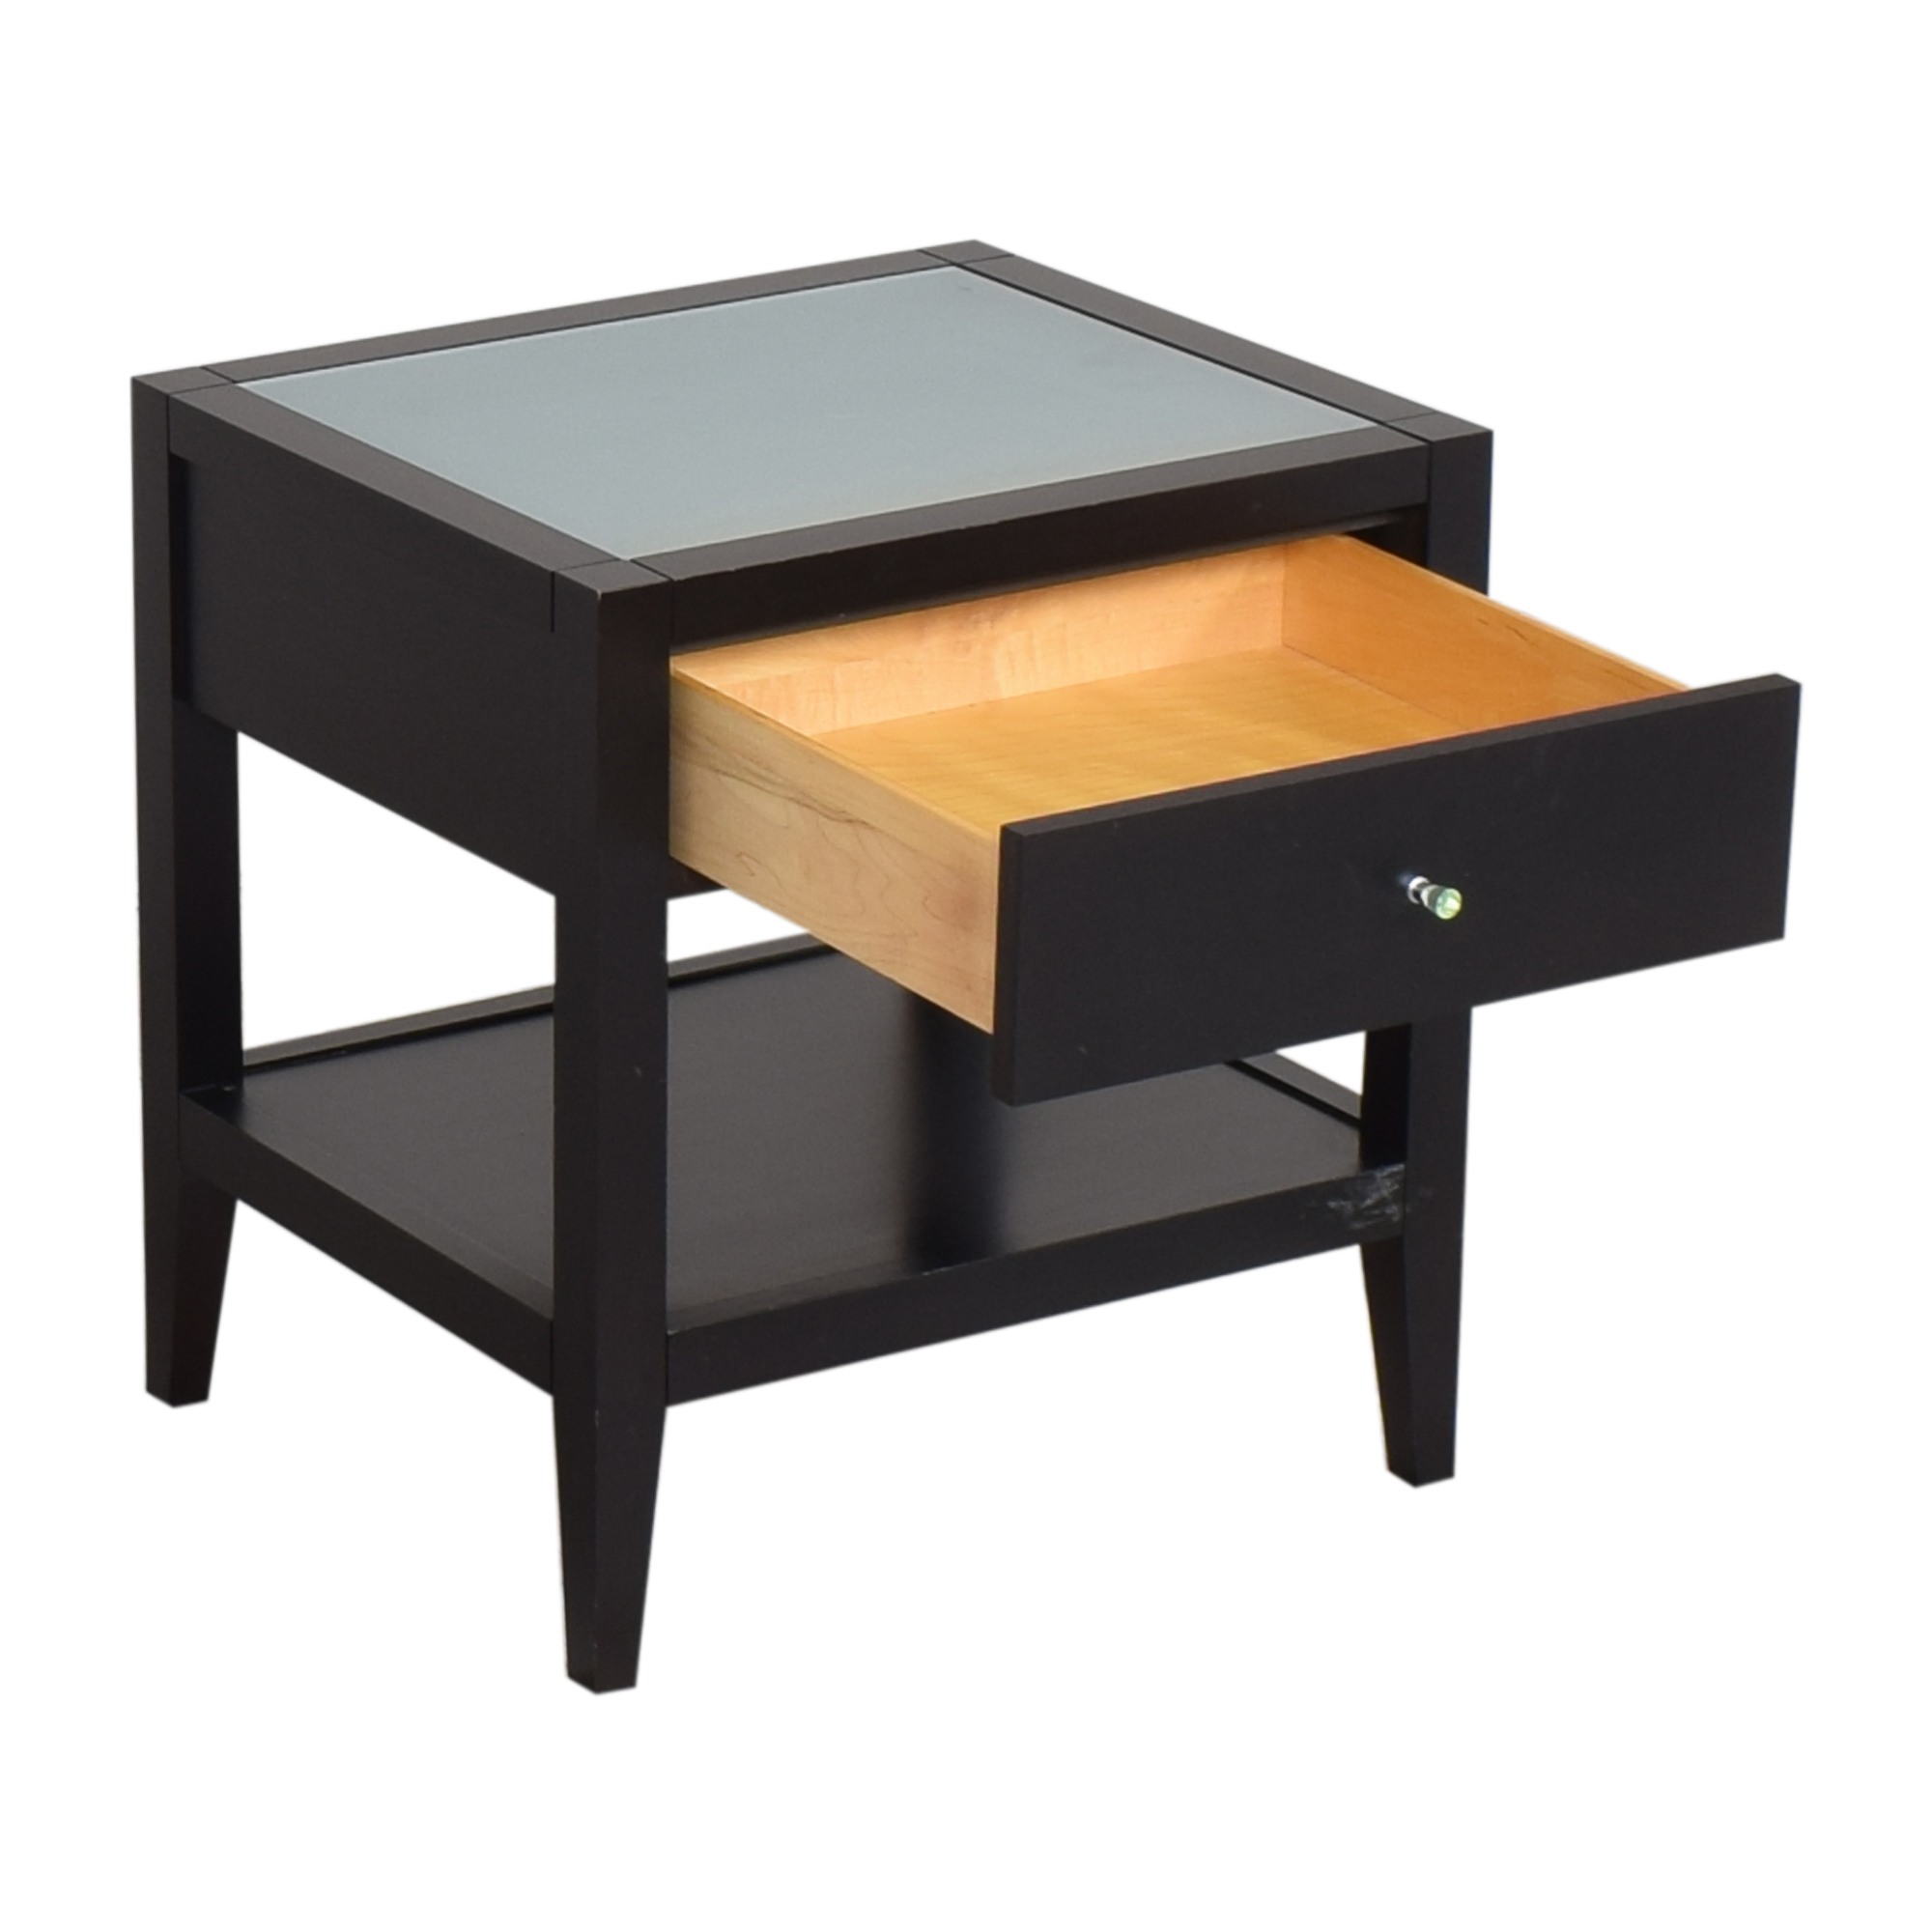 Crate & Barrel Crate & Barrel Nightstand by Baronet for sale